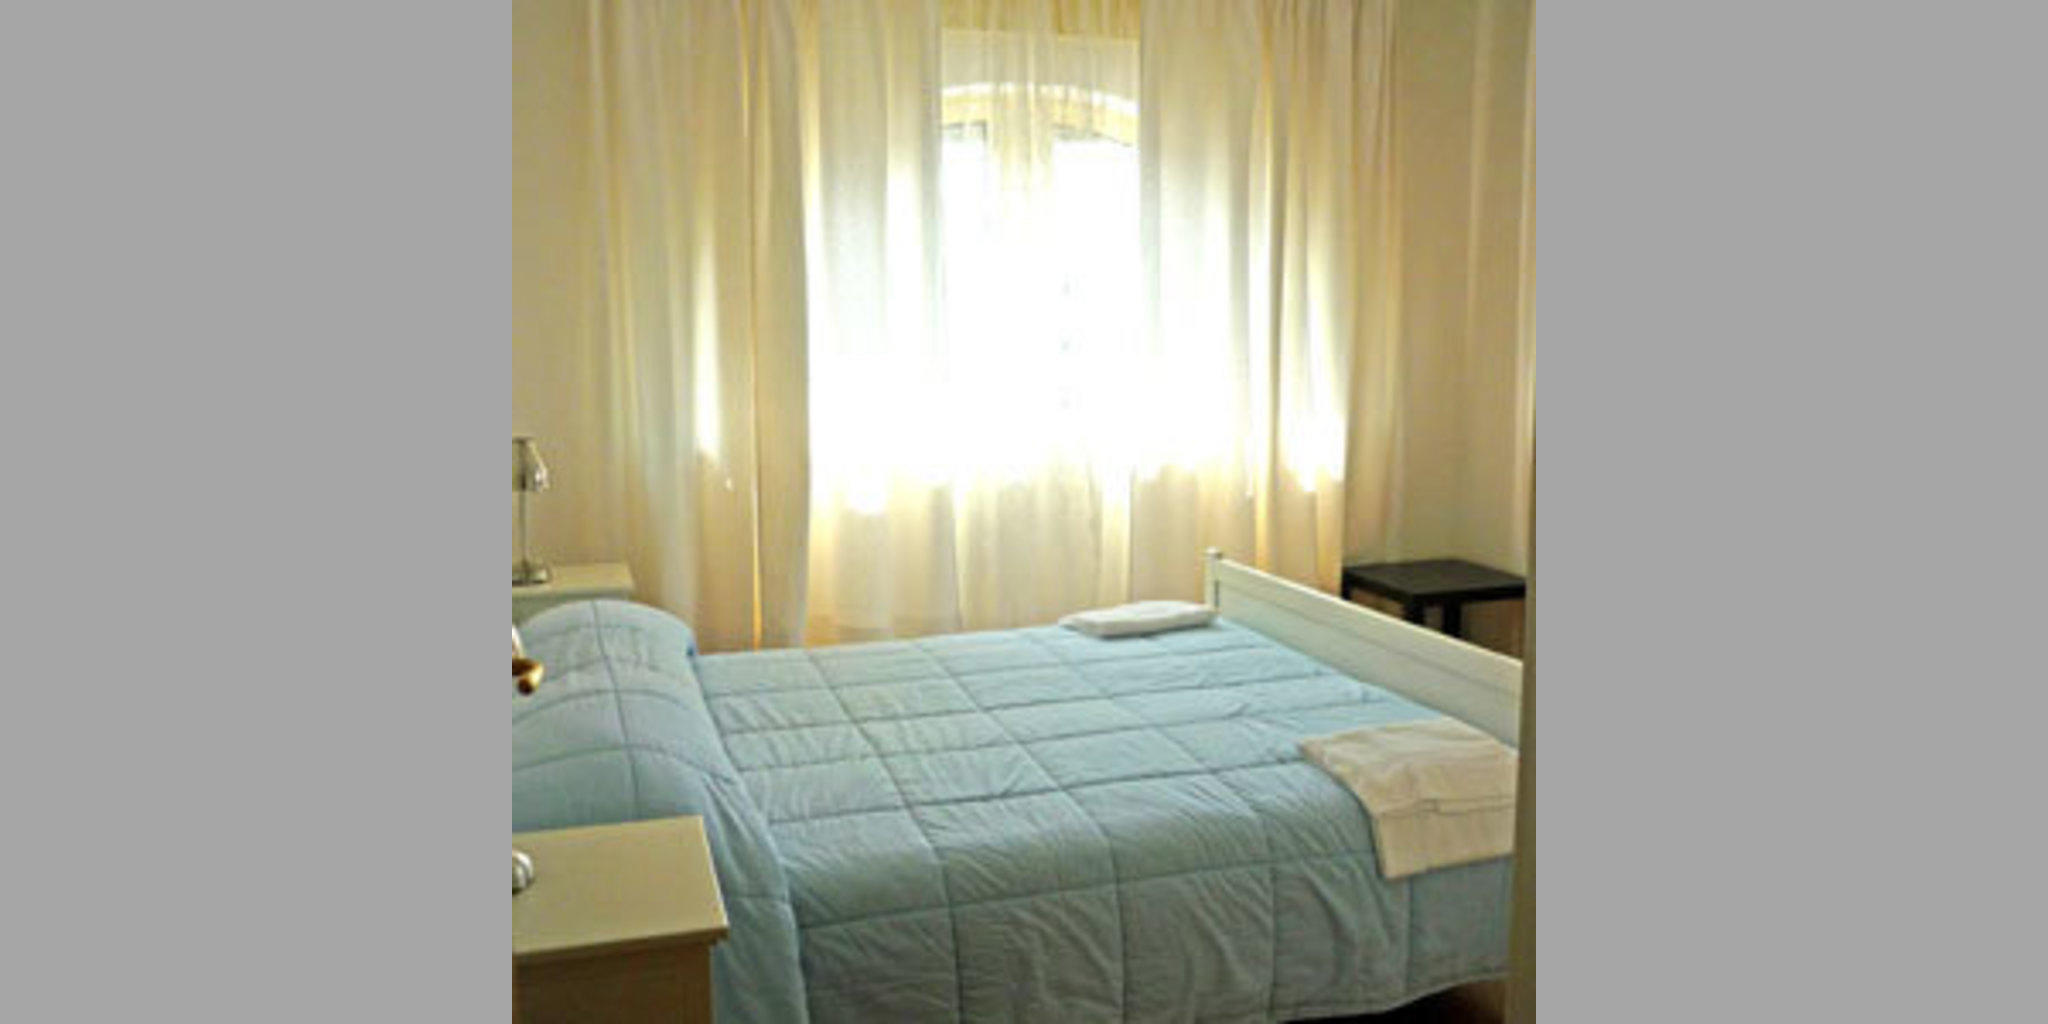 Bed & Breakfast Verona - Borgo Milano